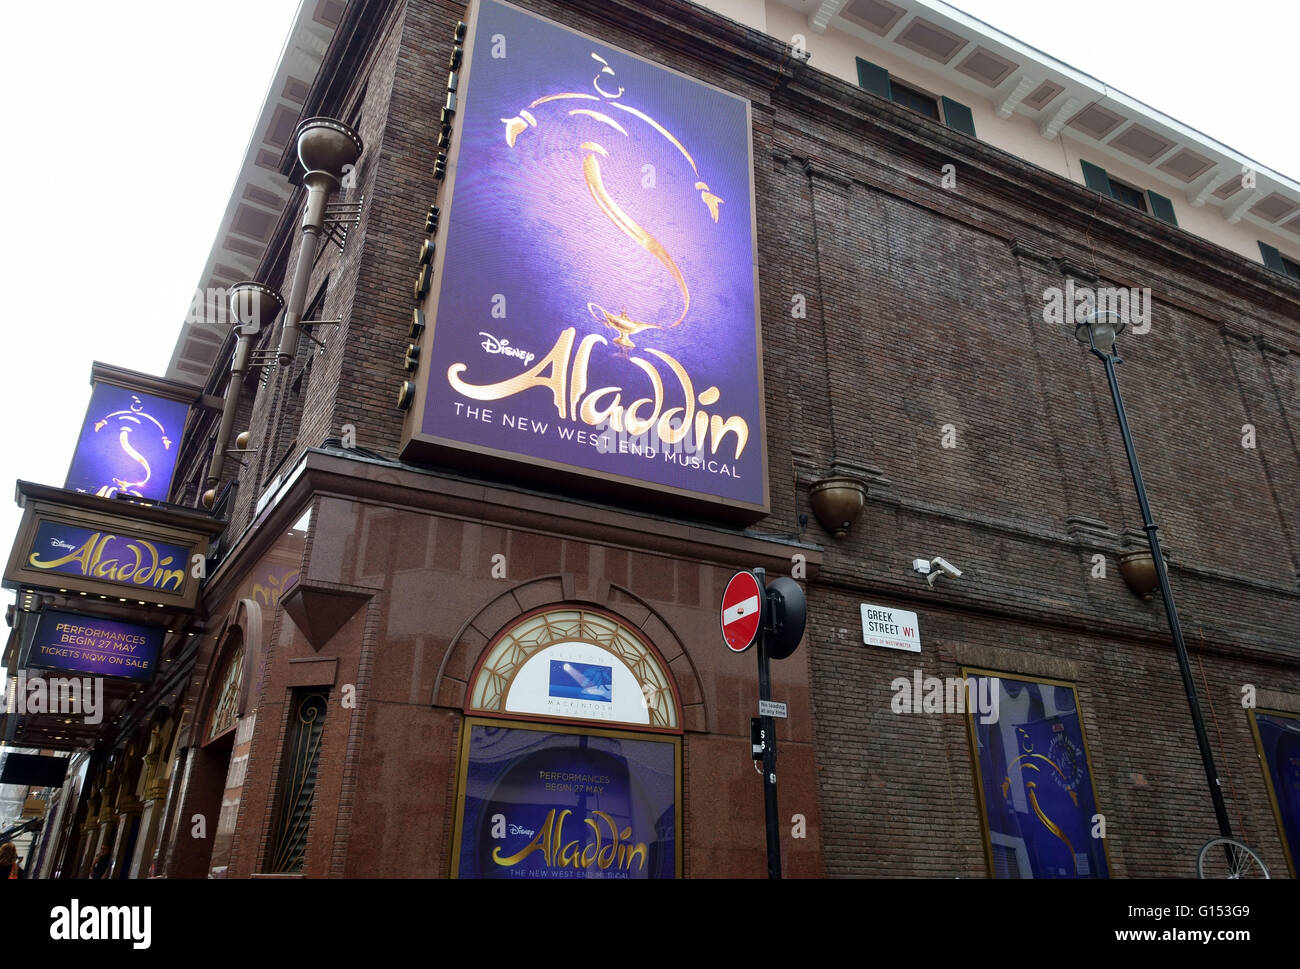 Disneys Aladdin Musical At Prince Edward Theatre In West End Of London